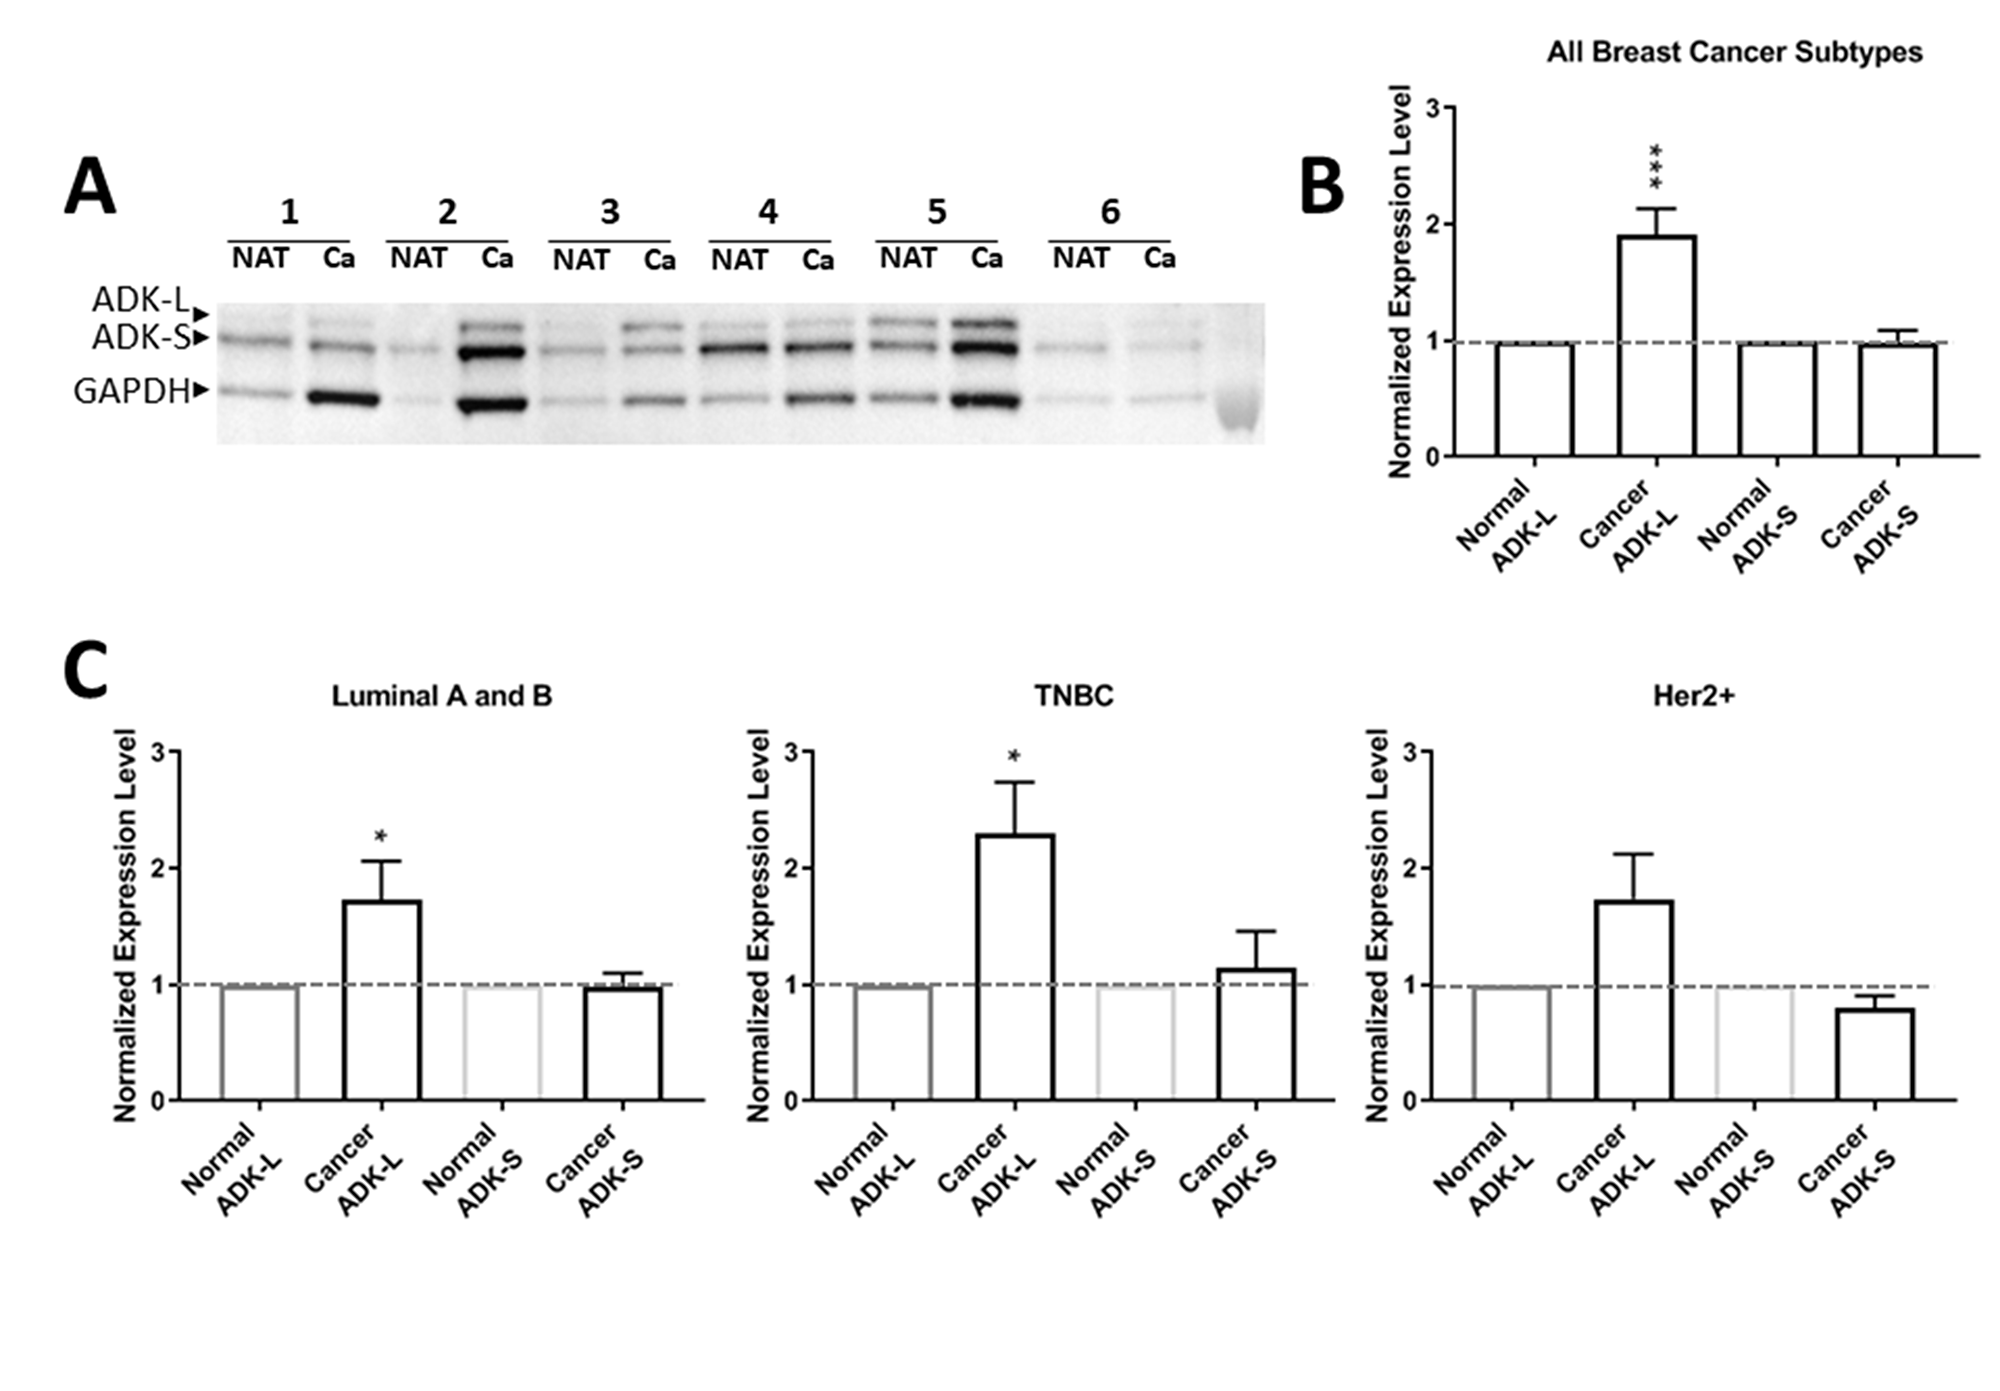 Expression profiles of ADK isoforms in cancer tumor versus NAT from 46 patients.